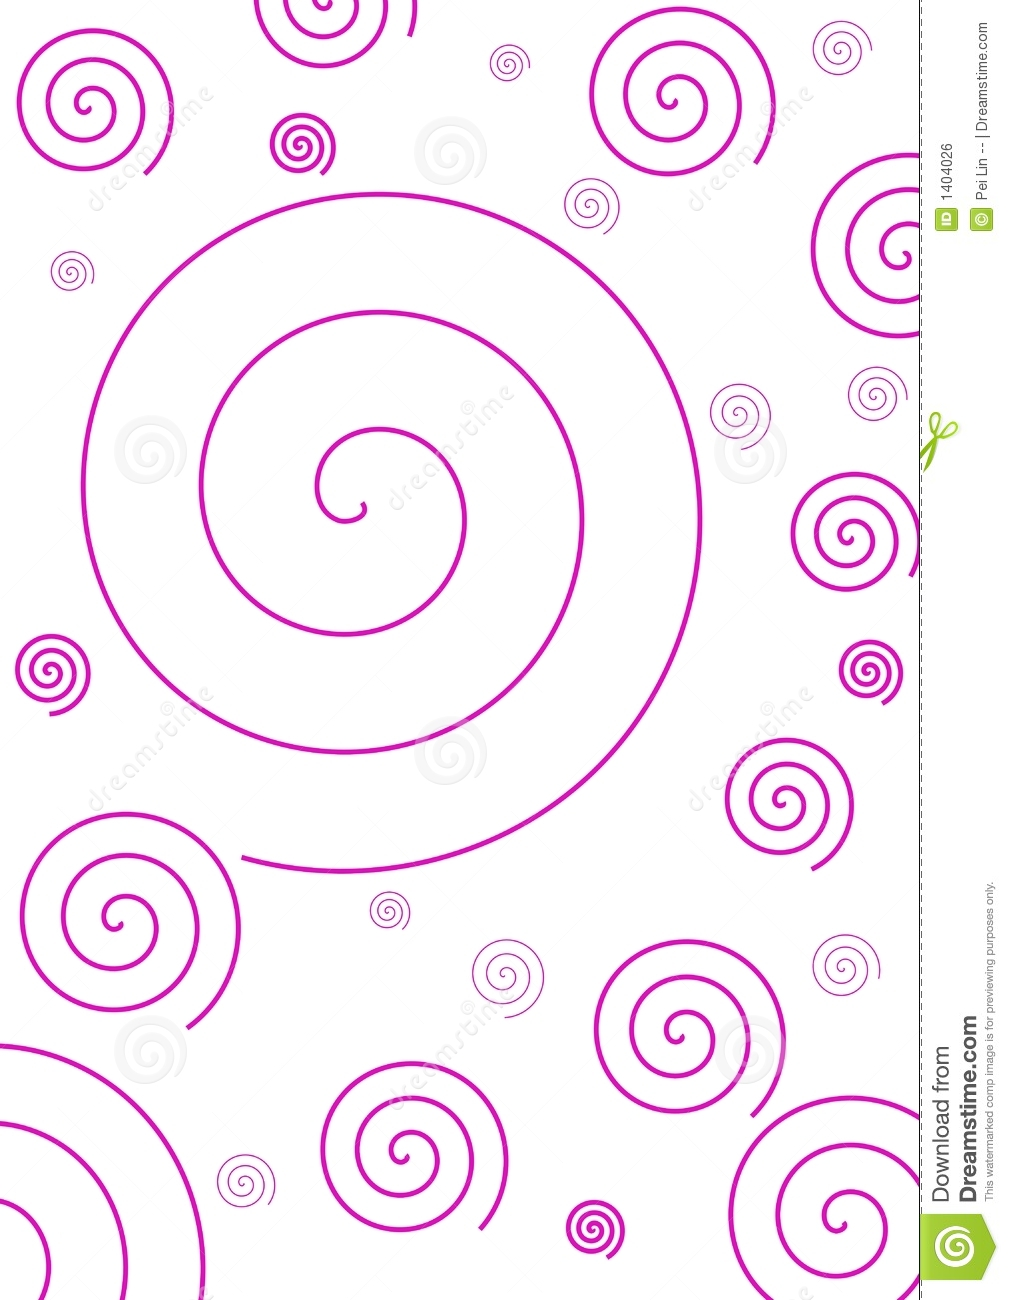 Fond spiralé rose simple